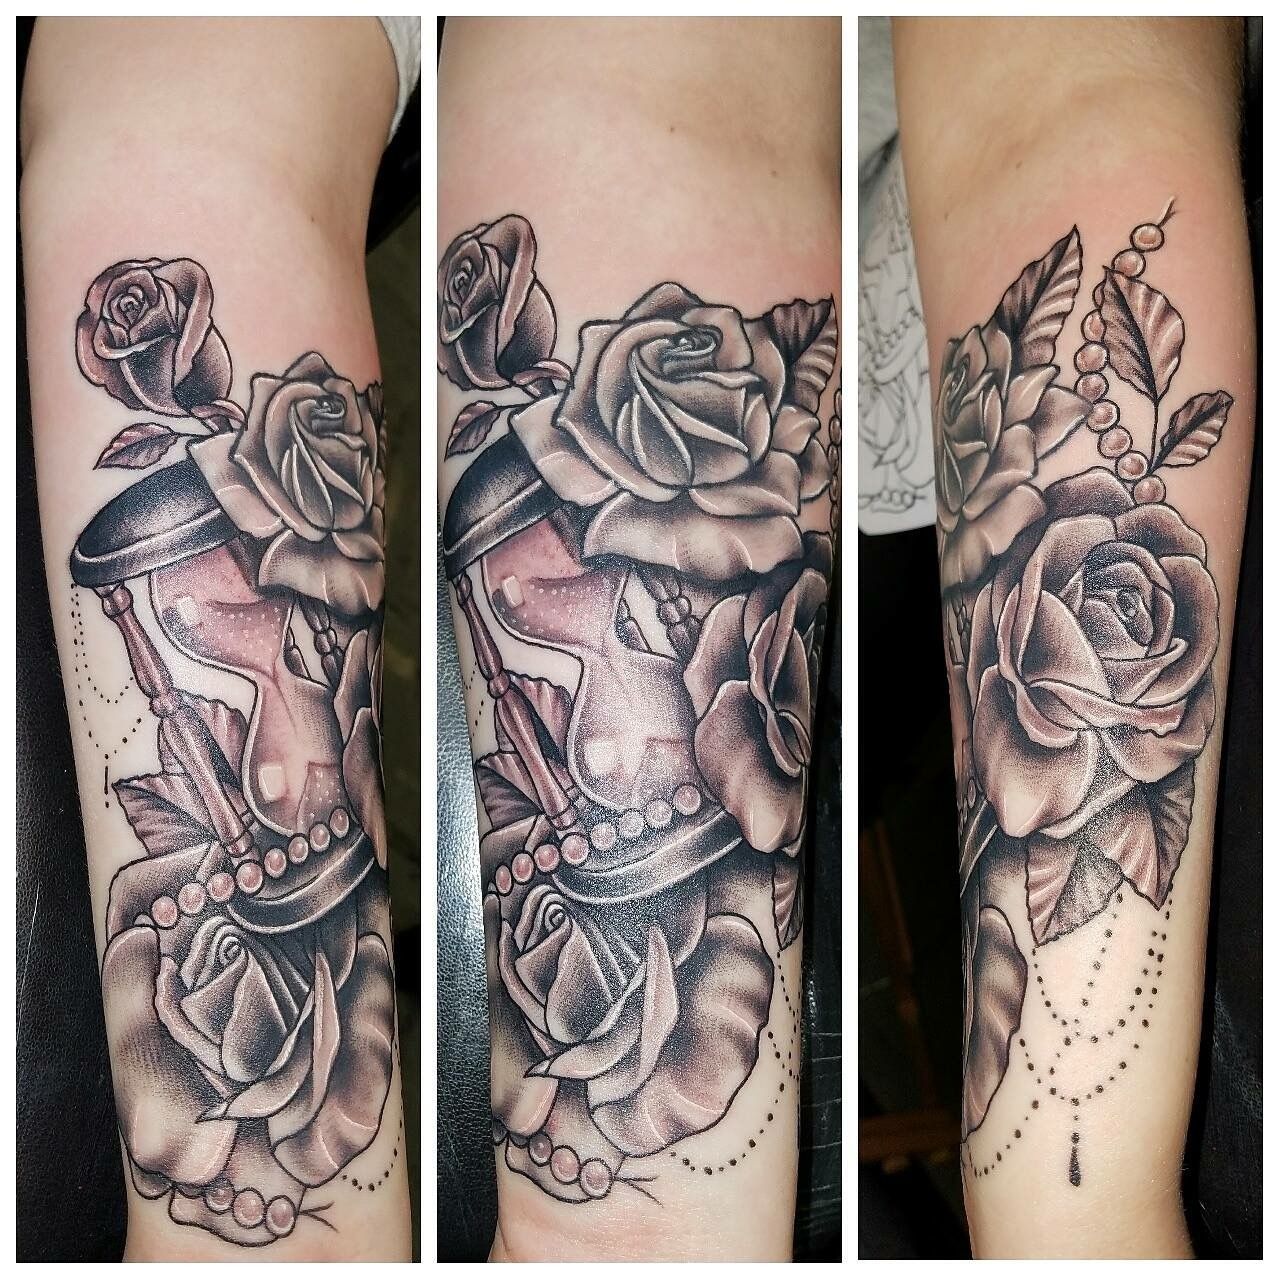 Tattoo Roses Pearls Hourglass Arm Leafs Orovillesliverscreen